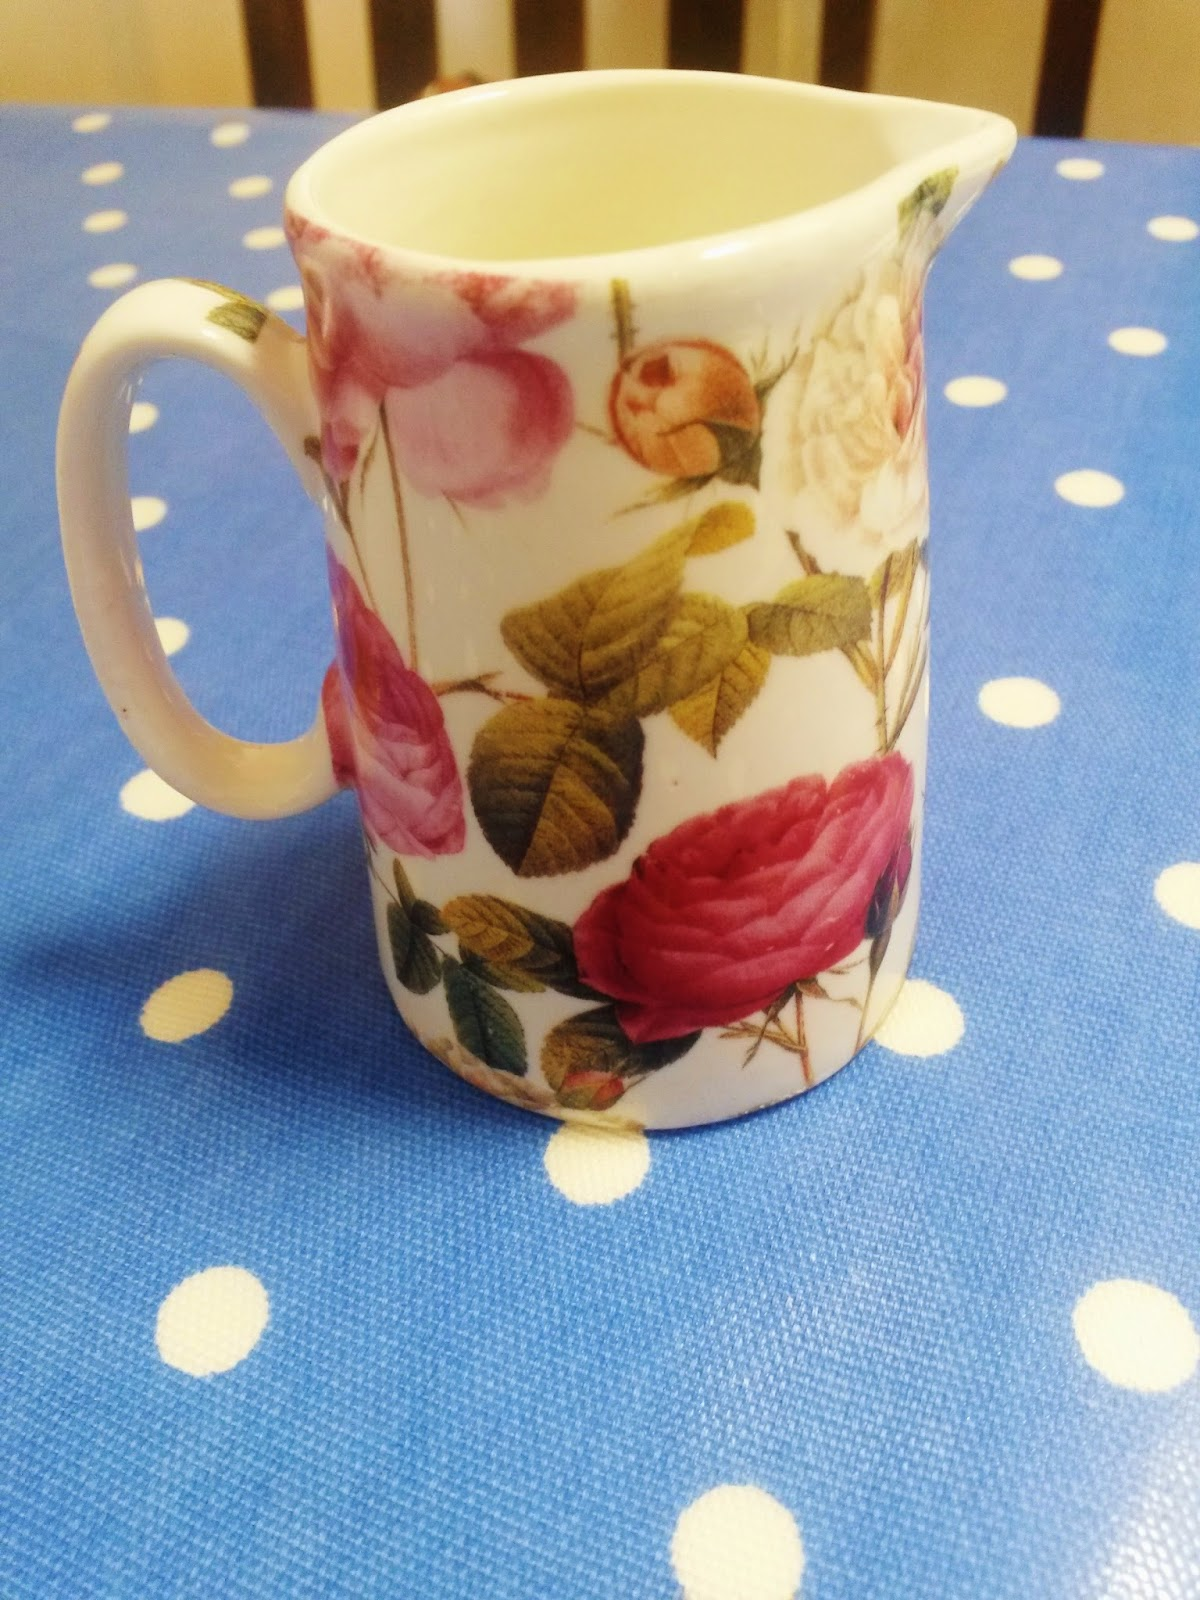 Milk jug for cream tea at the Dolls House